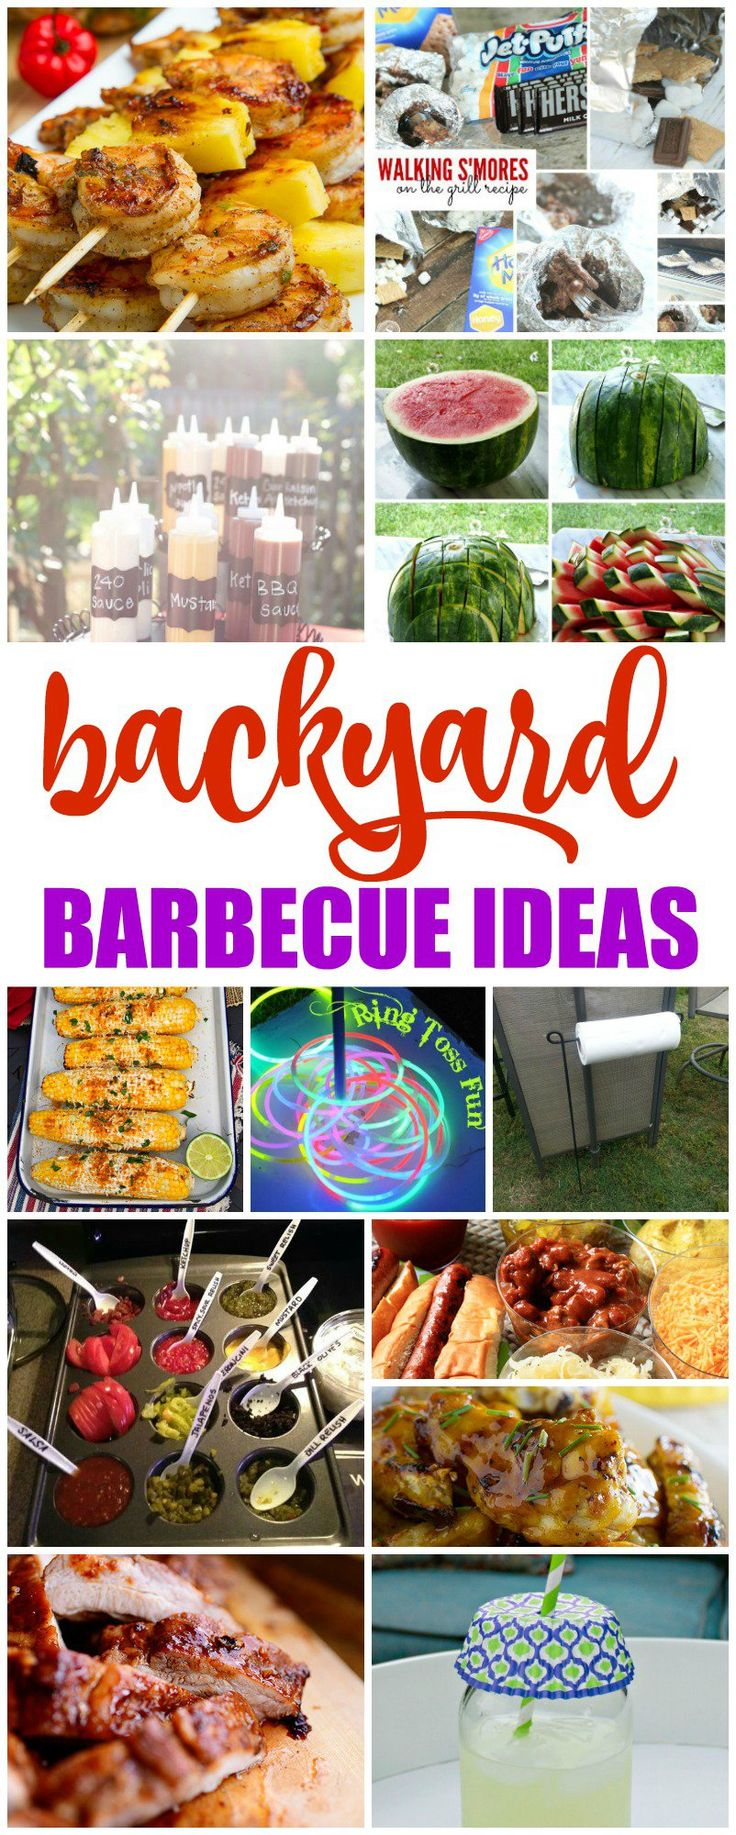 Backyard Bbq Menu Ideas check out 4th of july backyard bbq party ideas to celebrate independence day at Backyard Bbq Ideas Barbecue Recipes And Crafts For Family Fun All Summer Long